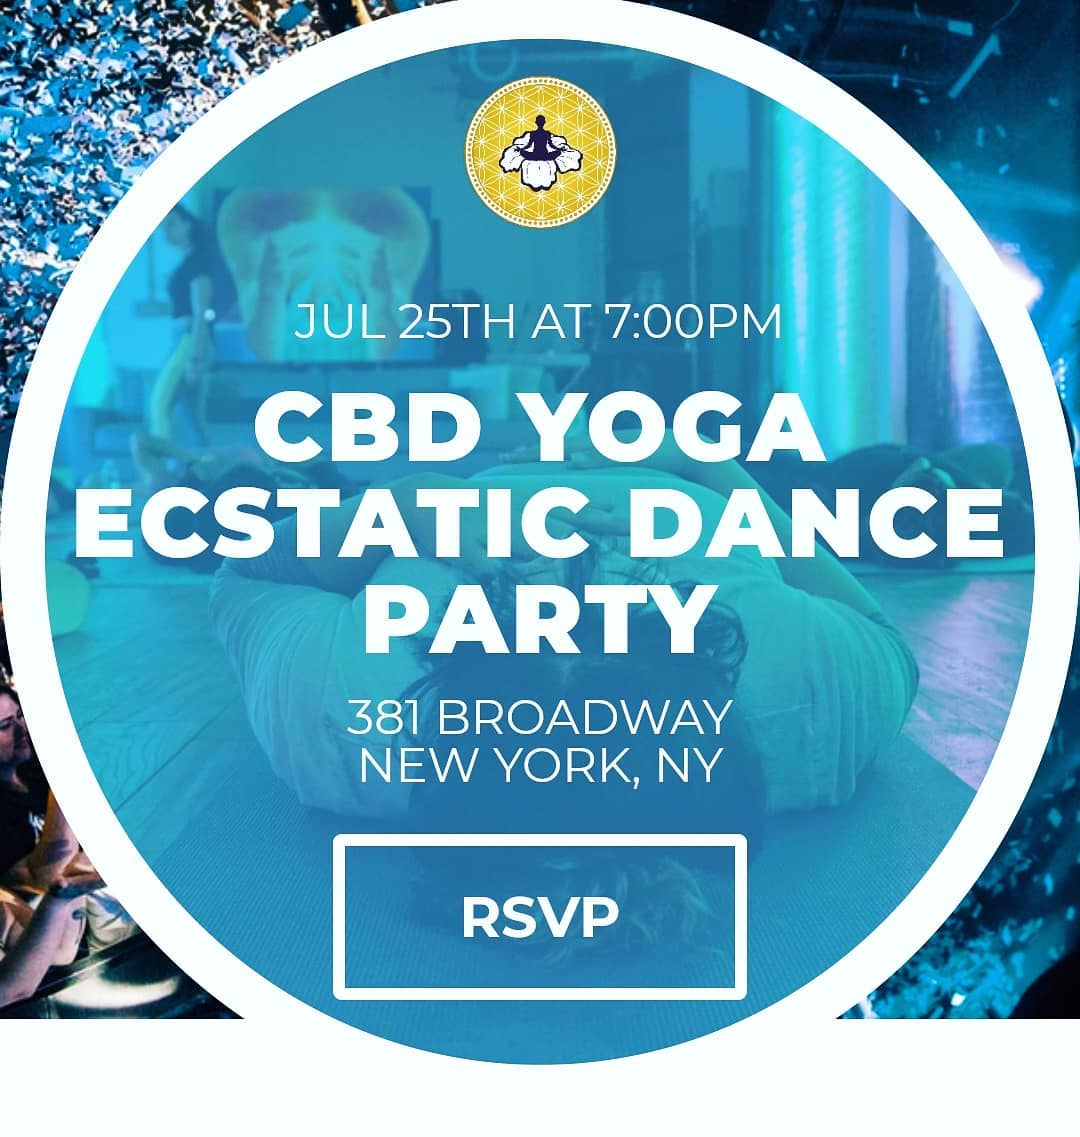 CBD Yoga Ecstatic Dance Party